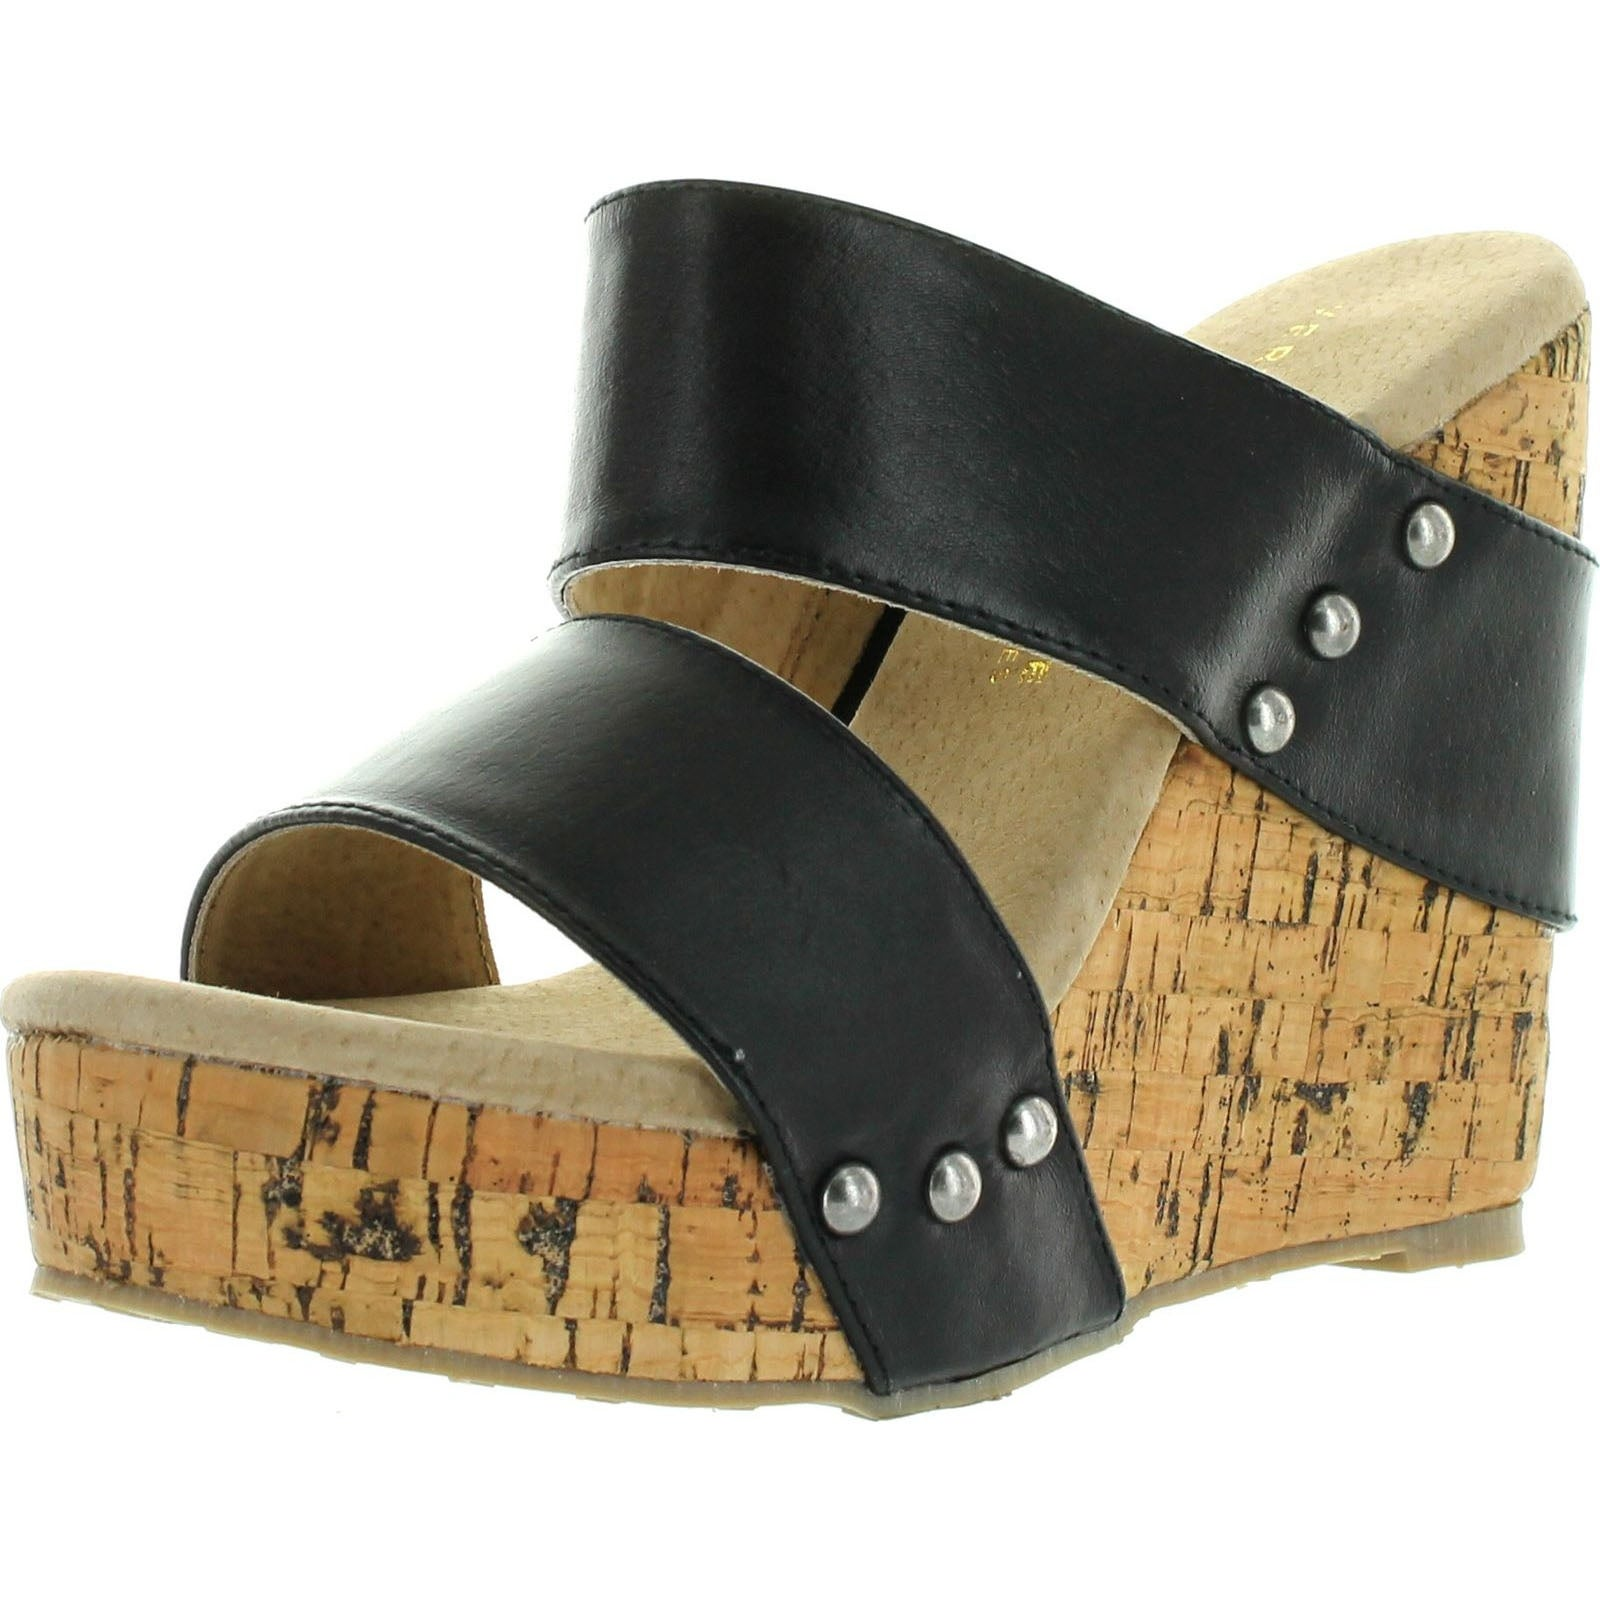 cc7fe2ffeaff9 Buy Very Volatile Women's Sandals Online at Overstock | Our Best Women's  Shoes Deals